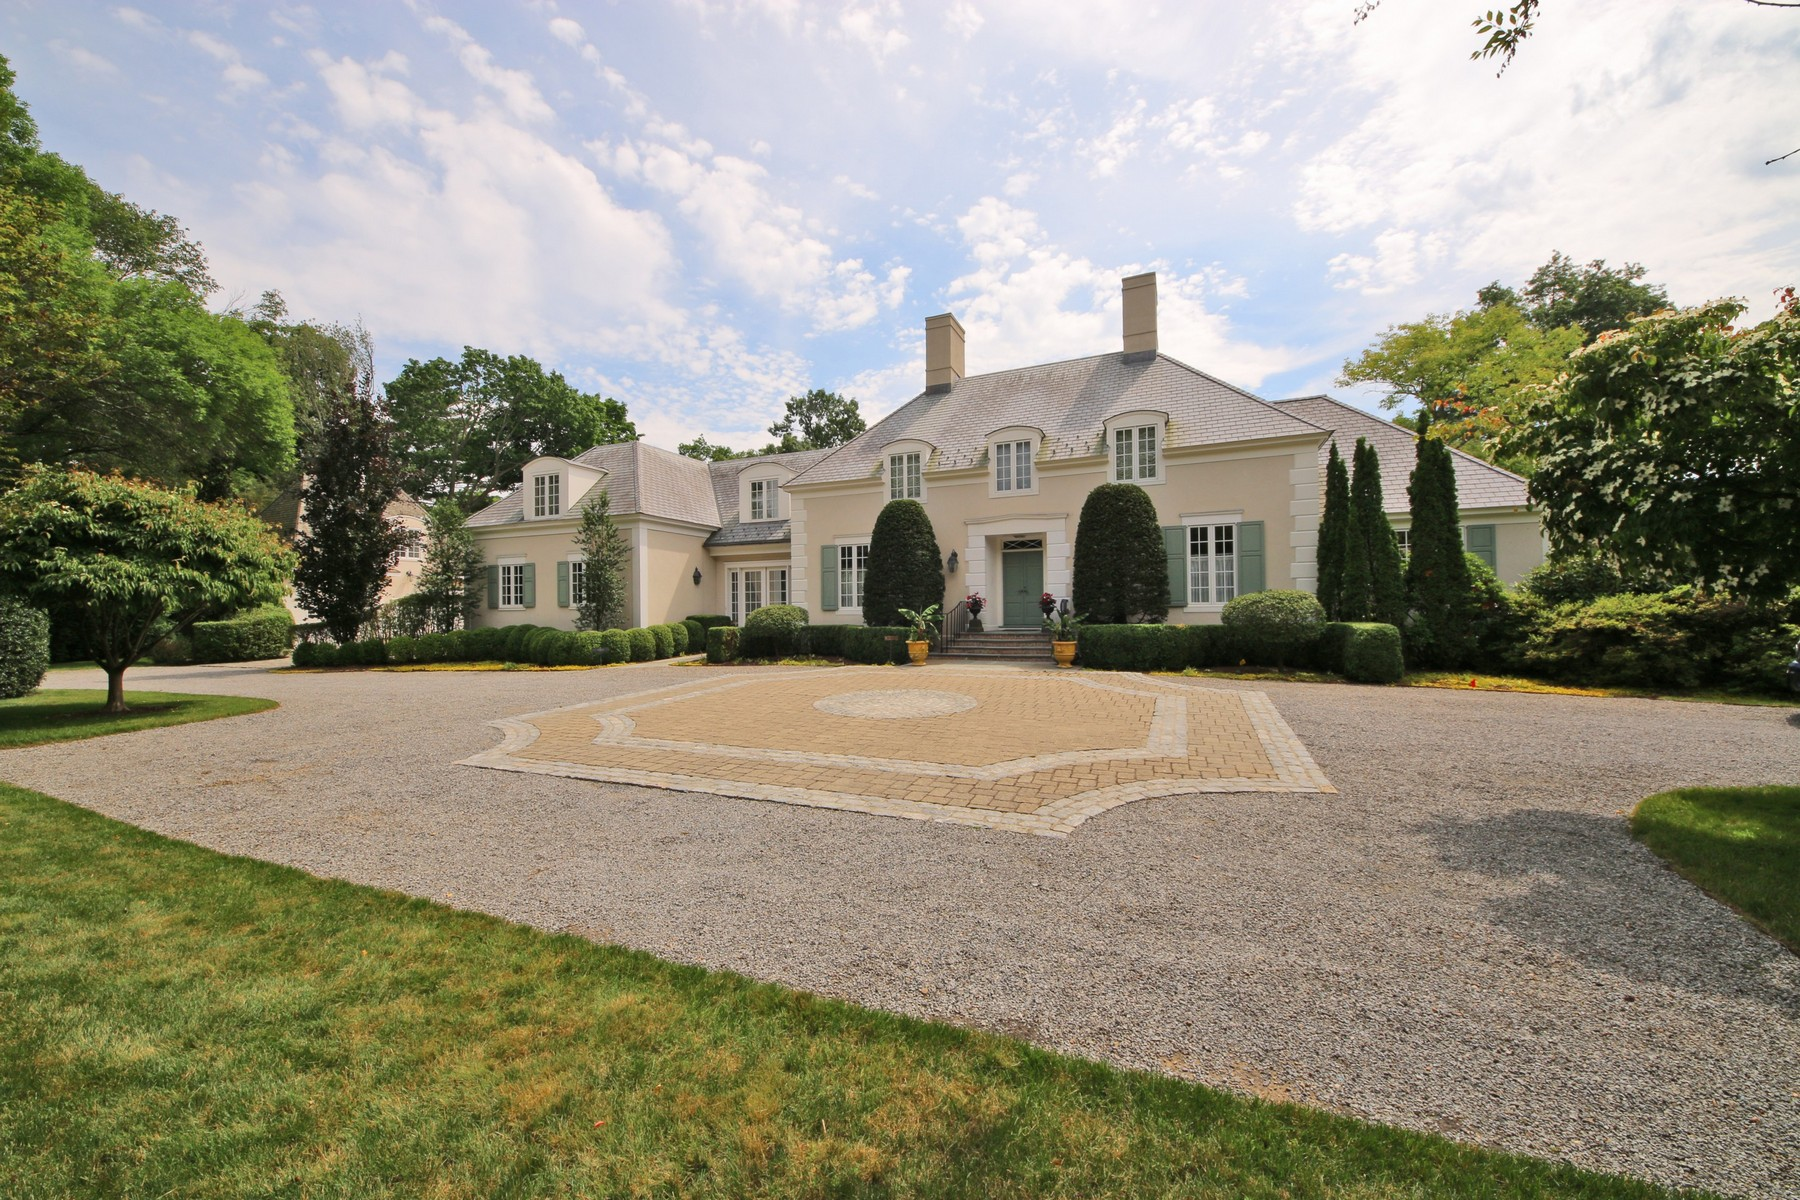 Single Family Home for Sale at French Country House in Southport 1011 Pequot Avenue Southport, Fairfield, Connecticut 06890 United States